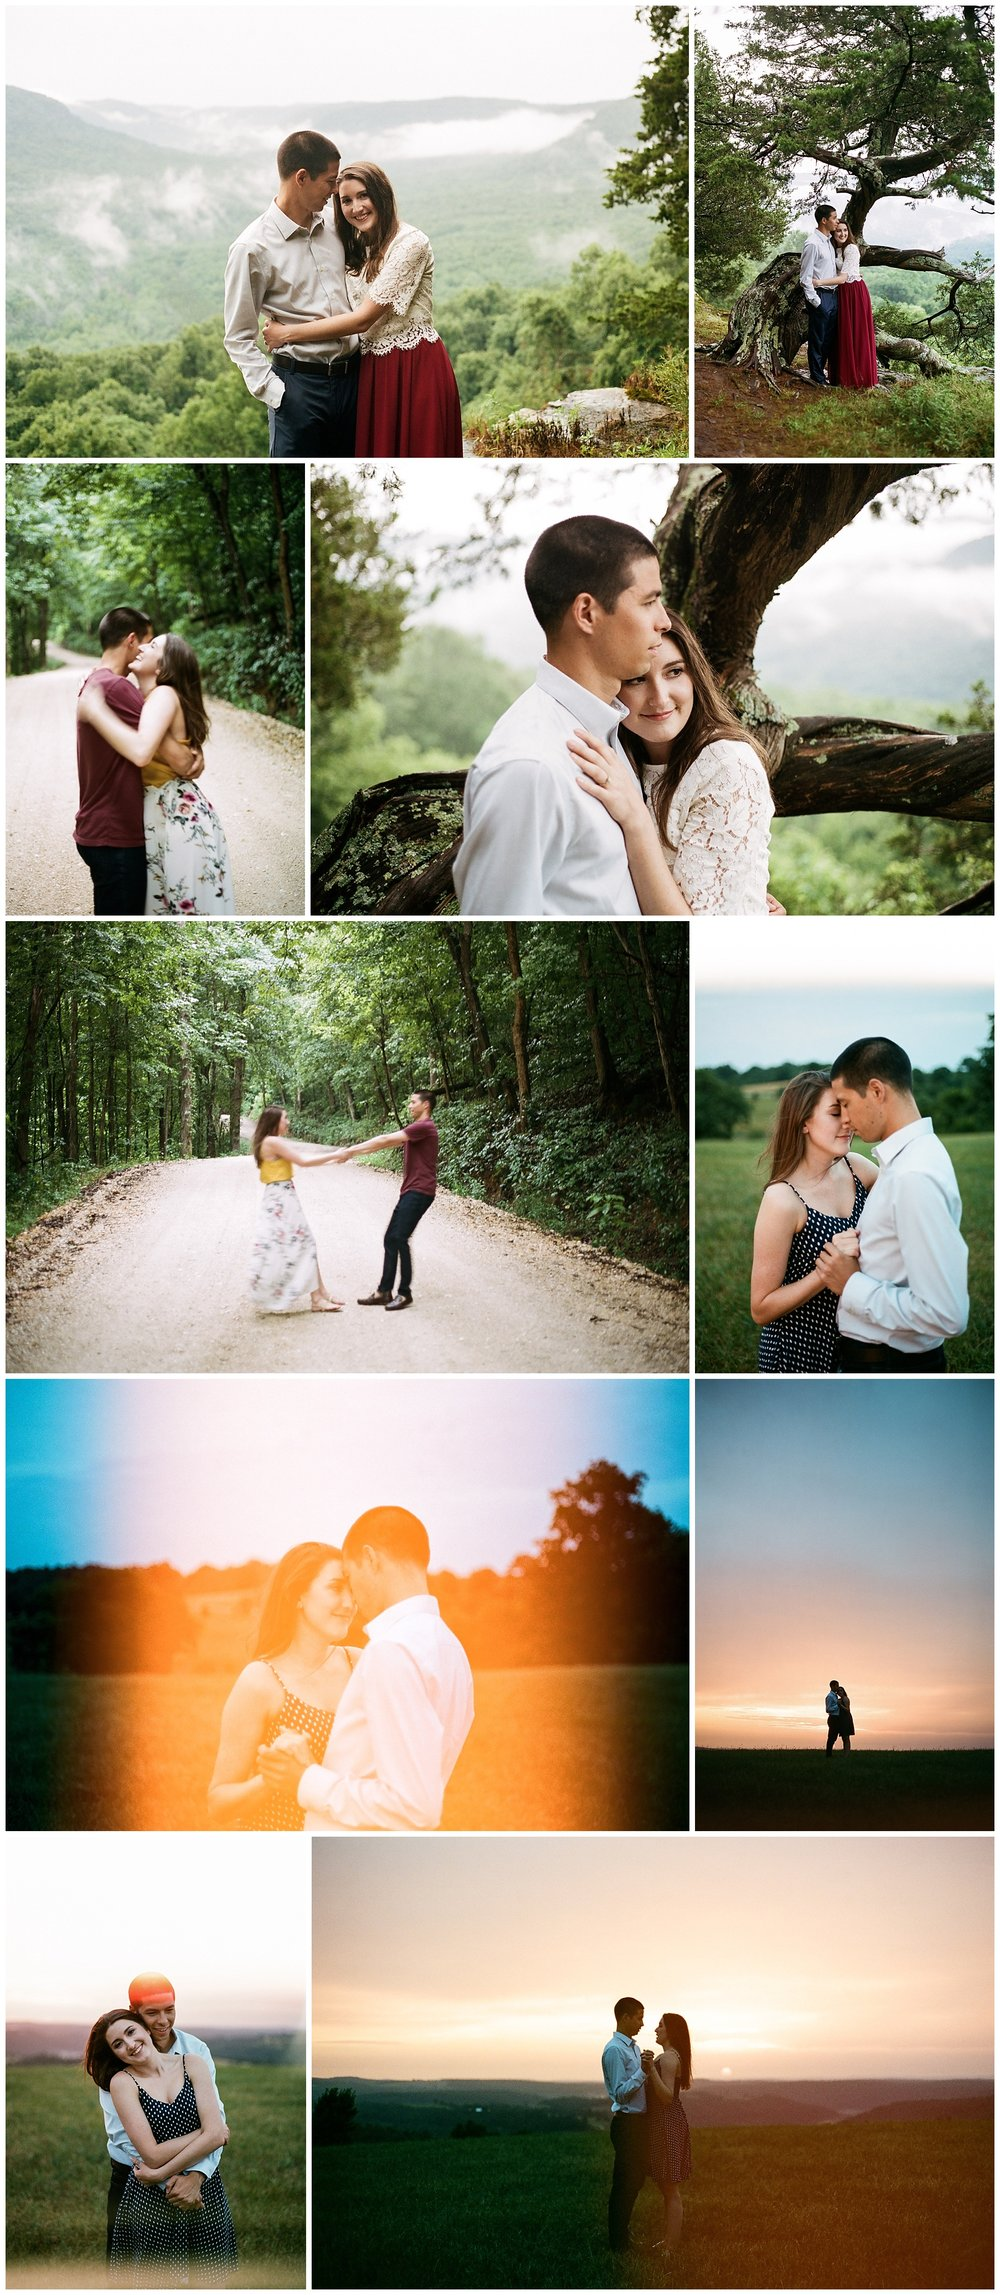 35mm Film Portra 400 Misty Mountain Adventure Engagements by Tanner Burge